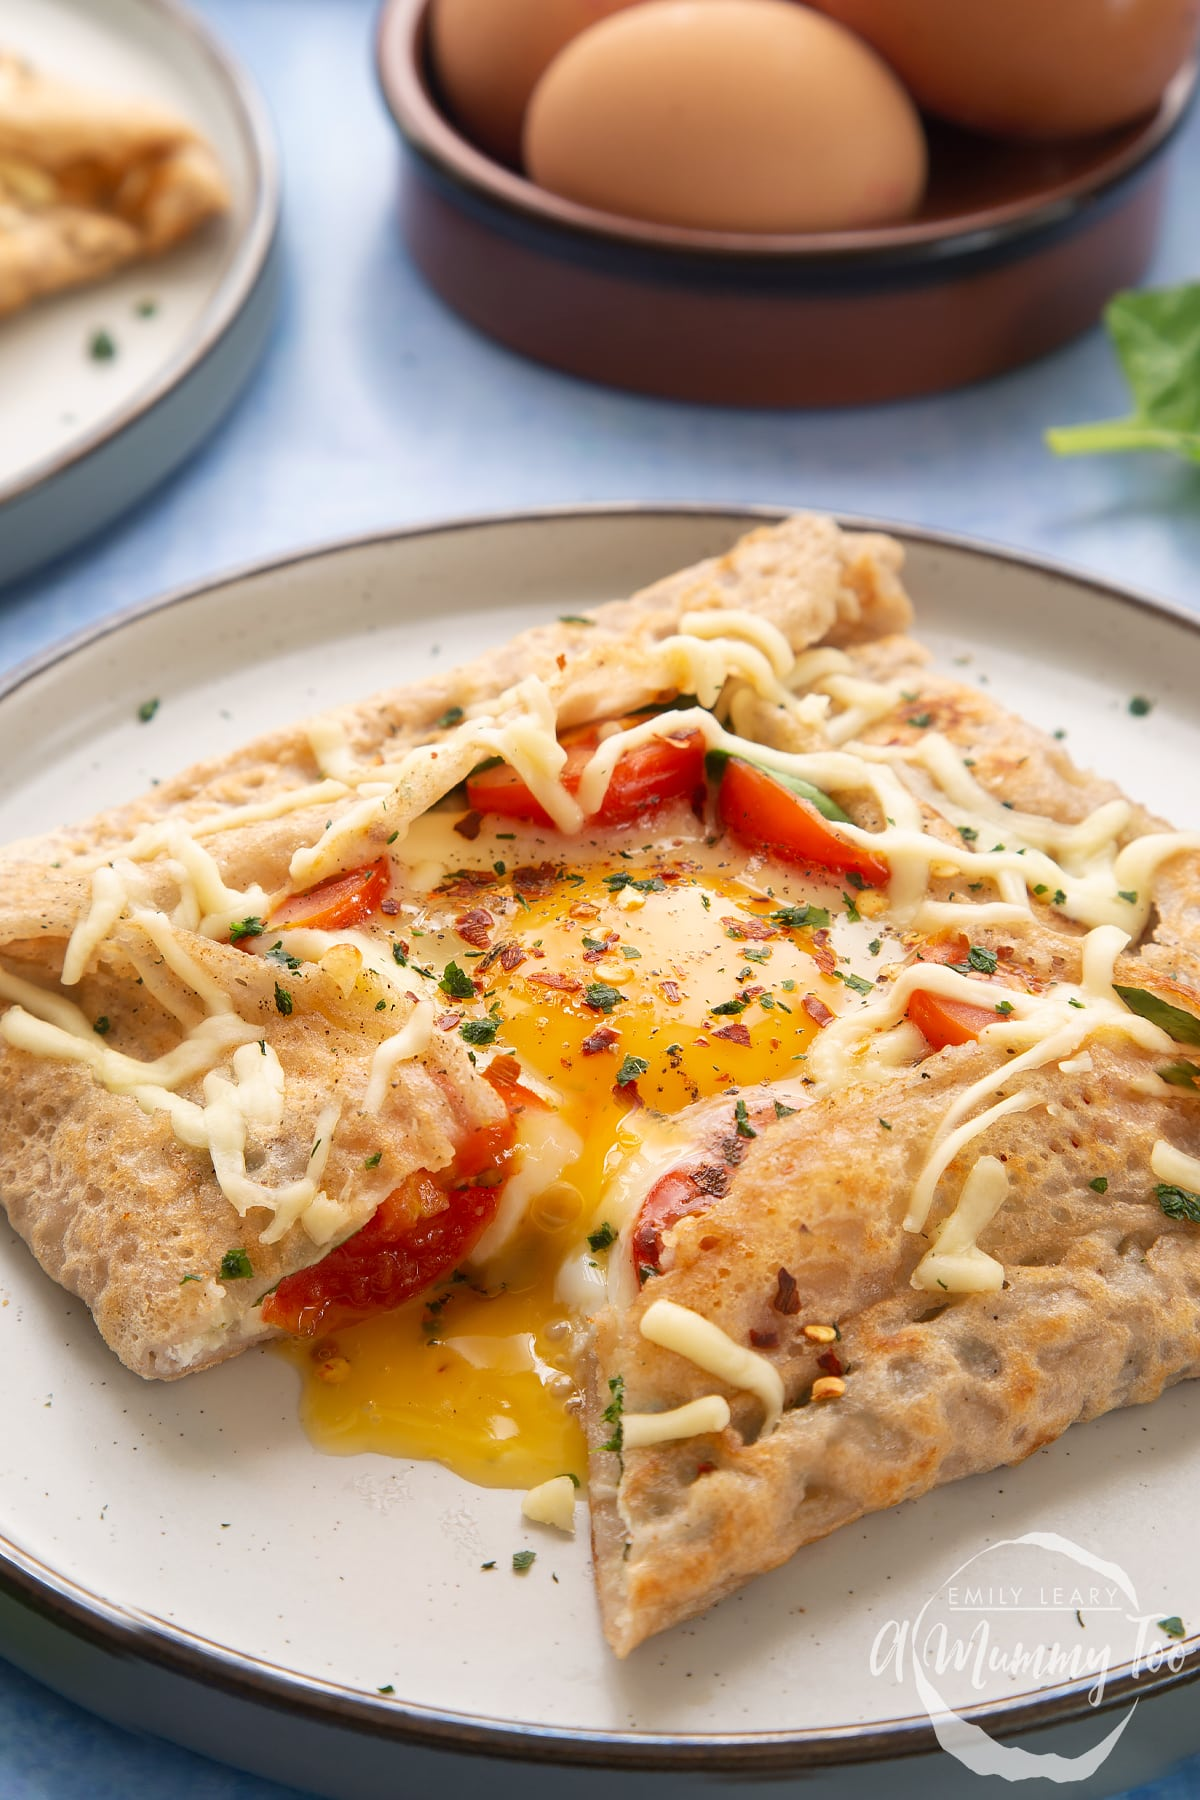 A buckwheat galette on plate with ingredients behind it. The galette is filled with spinach, tomatoes, cheese and a lightly cooked egg.